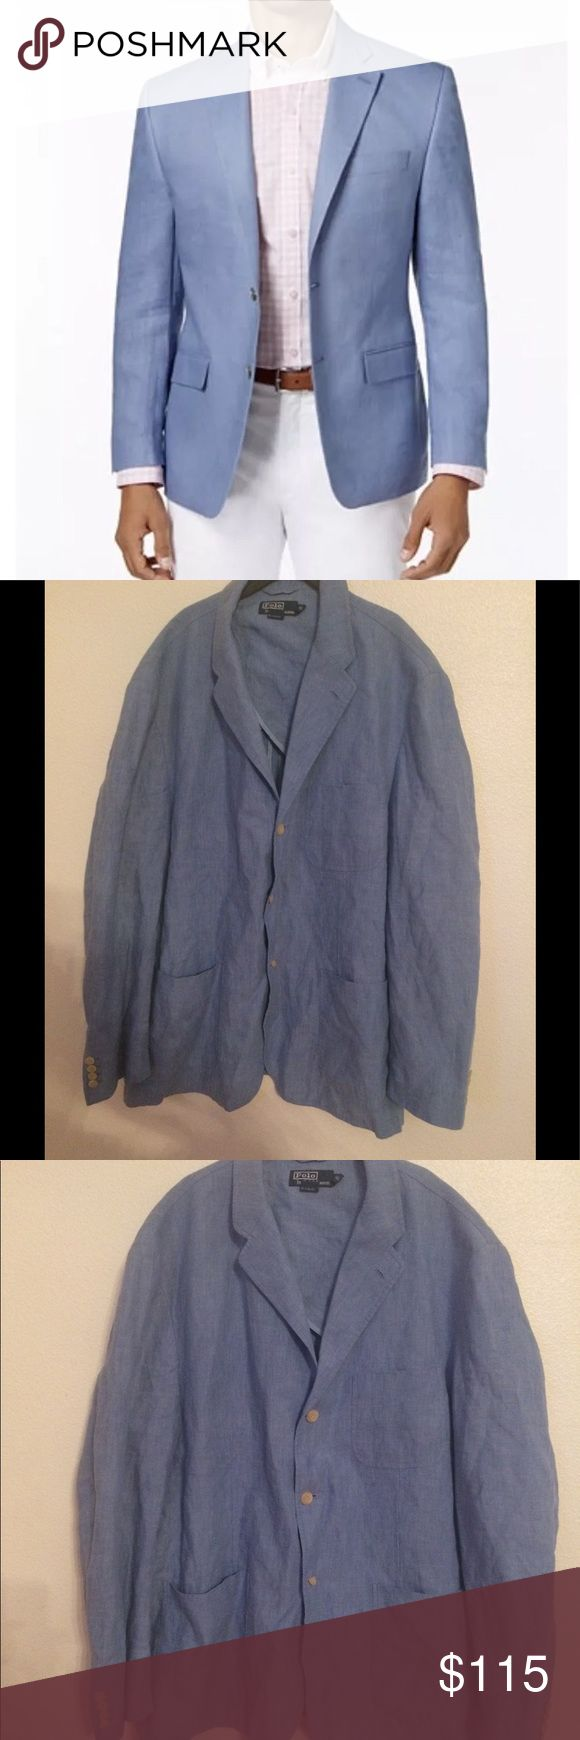 Ralph Lauren Polo Linen Blazers Sz XXL MSRP $350 Ralph Lauren Men's 100% Linen Blazers / Jacket Sz XXL (2X) MSRP $350 Ralph Lauren Polo Color: Light Blue Size Men's Big&Tall  Color of the real item may be a little bit different due to factors such as lighting / monitor resolution etc. Polo by Ralph Lauren Suits & Blazers Sport Coats & Blazers